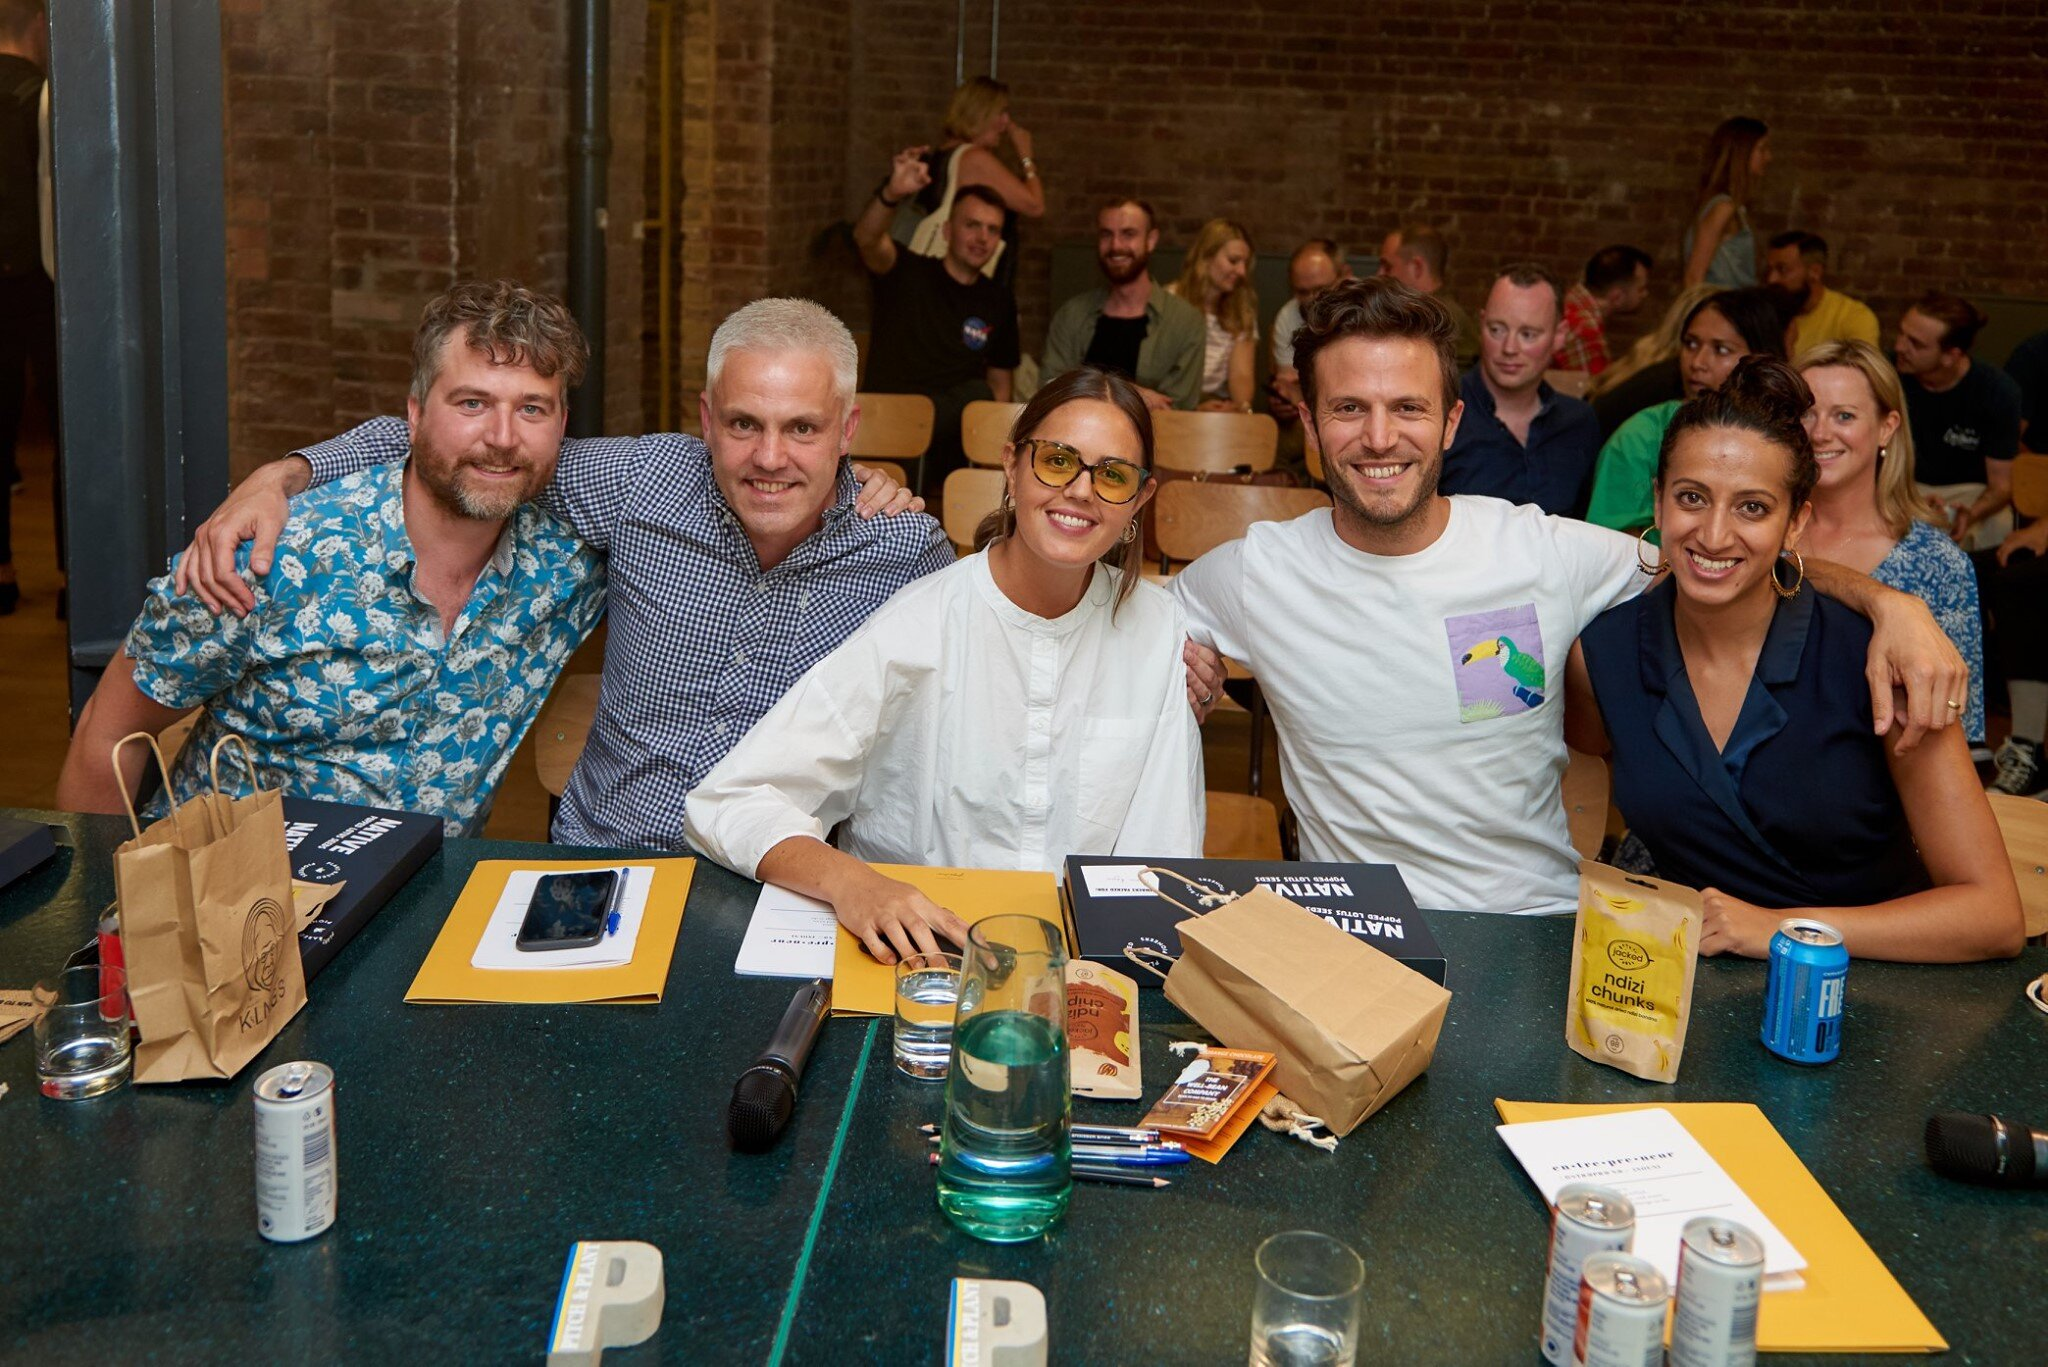 Grace as a judge at Pitch + Plant 2019